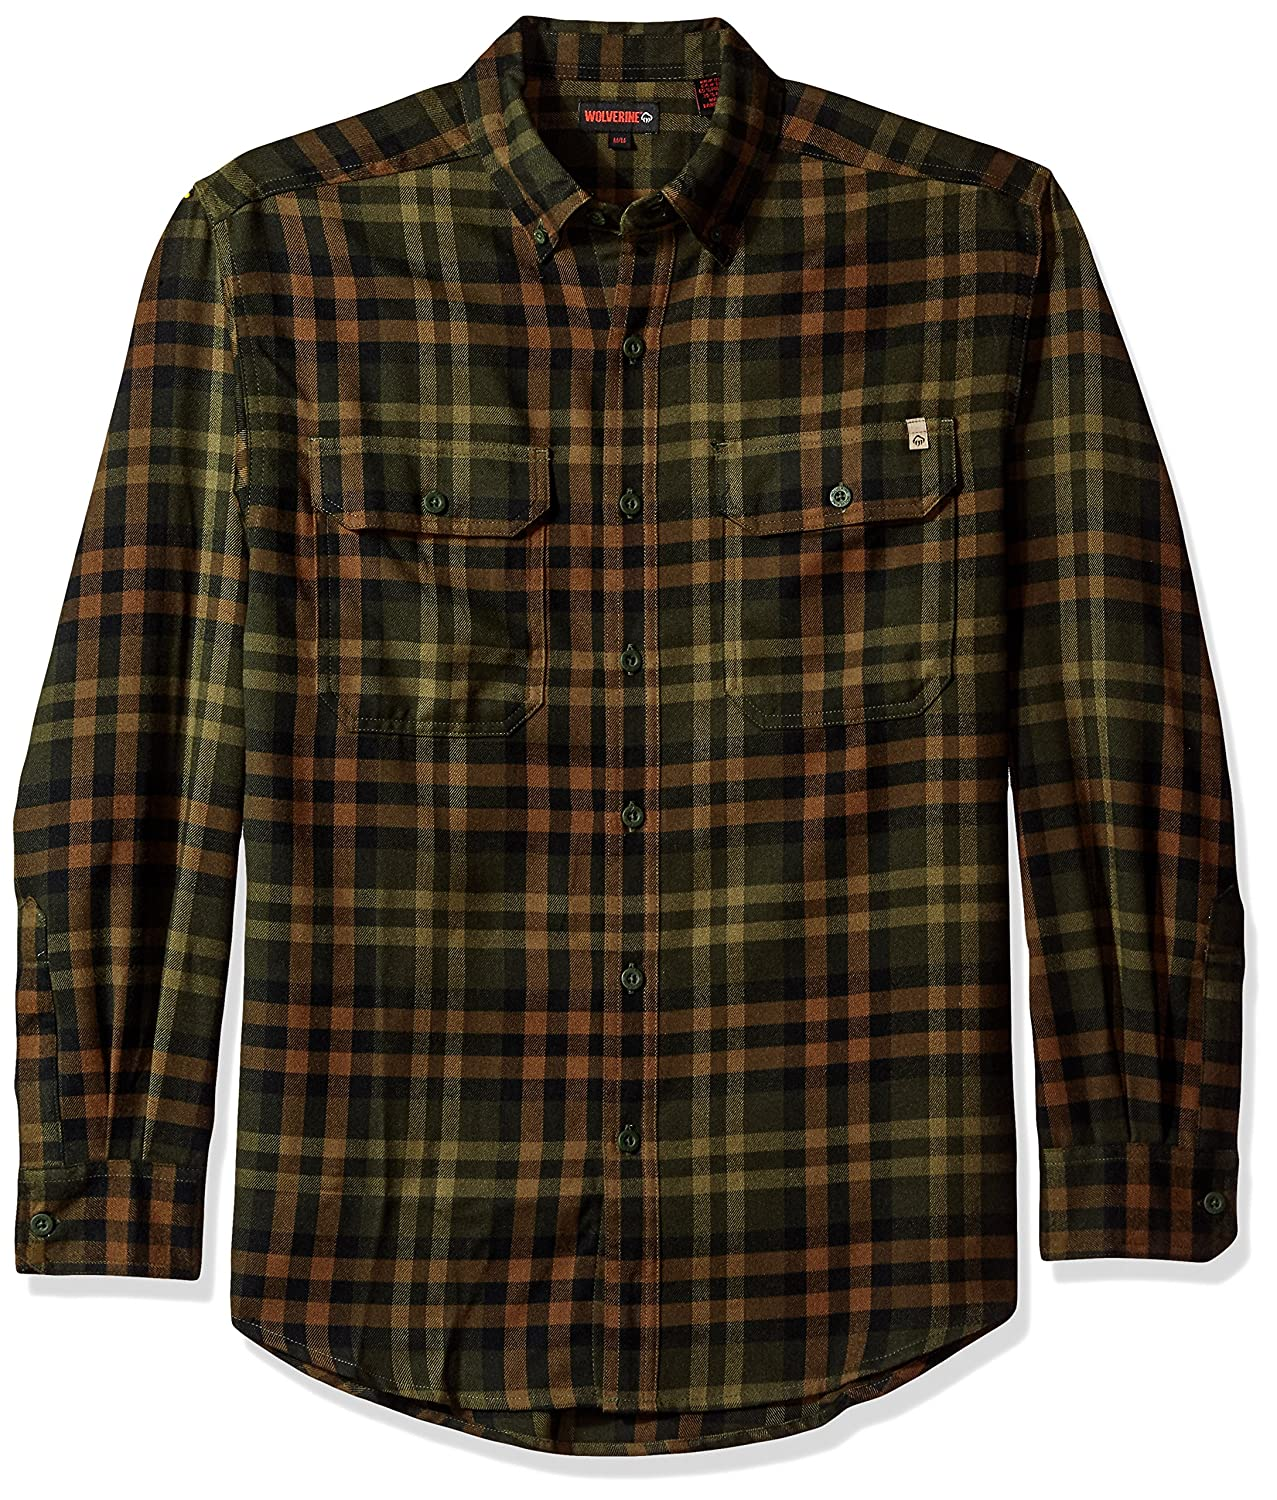 Wolverine SHIRT メンズ B0711628DR L|Hunter Plaid Hunter Plaid L